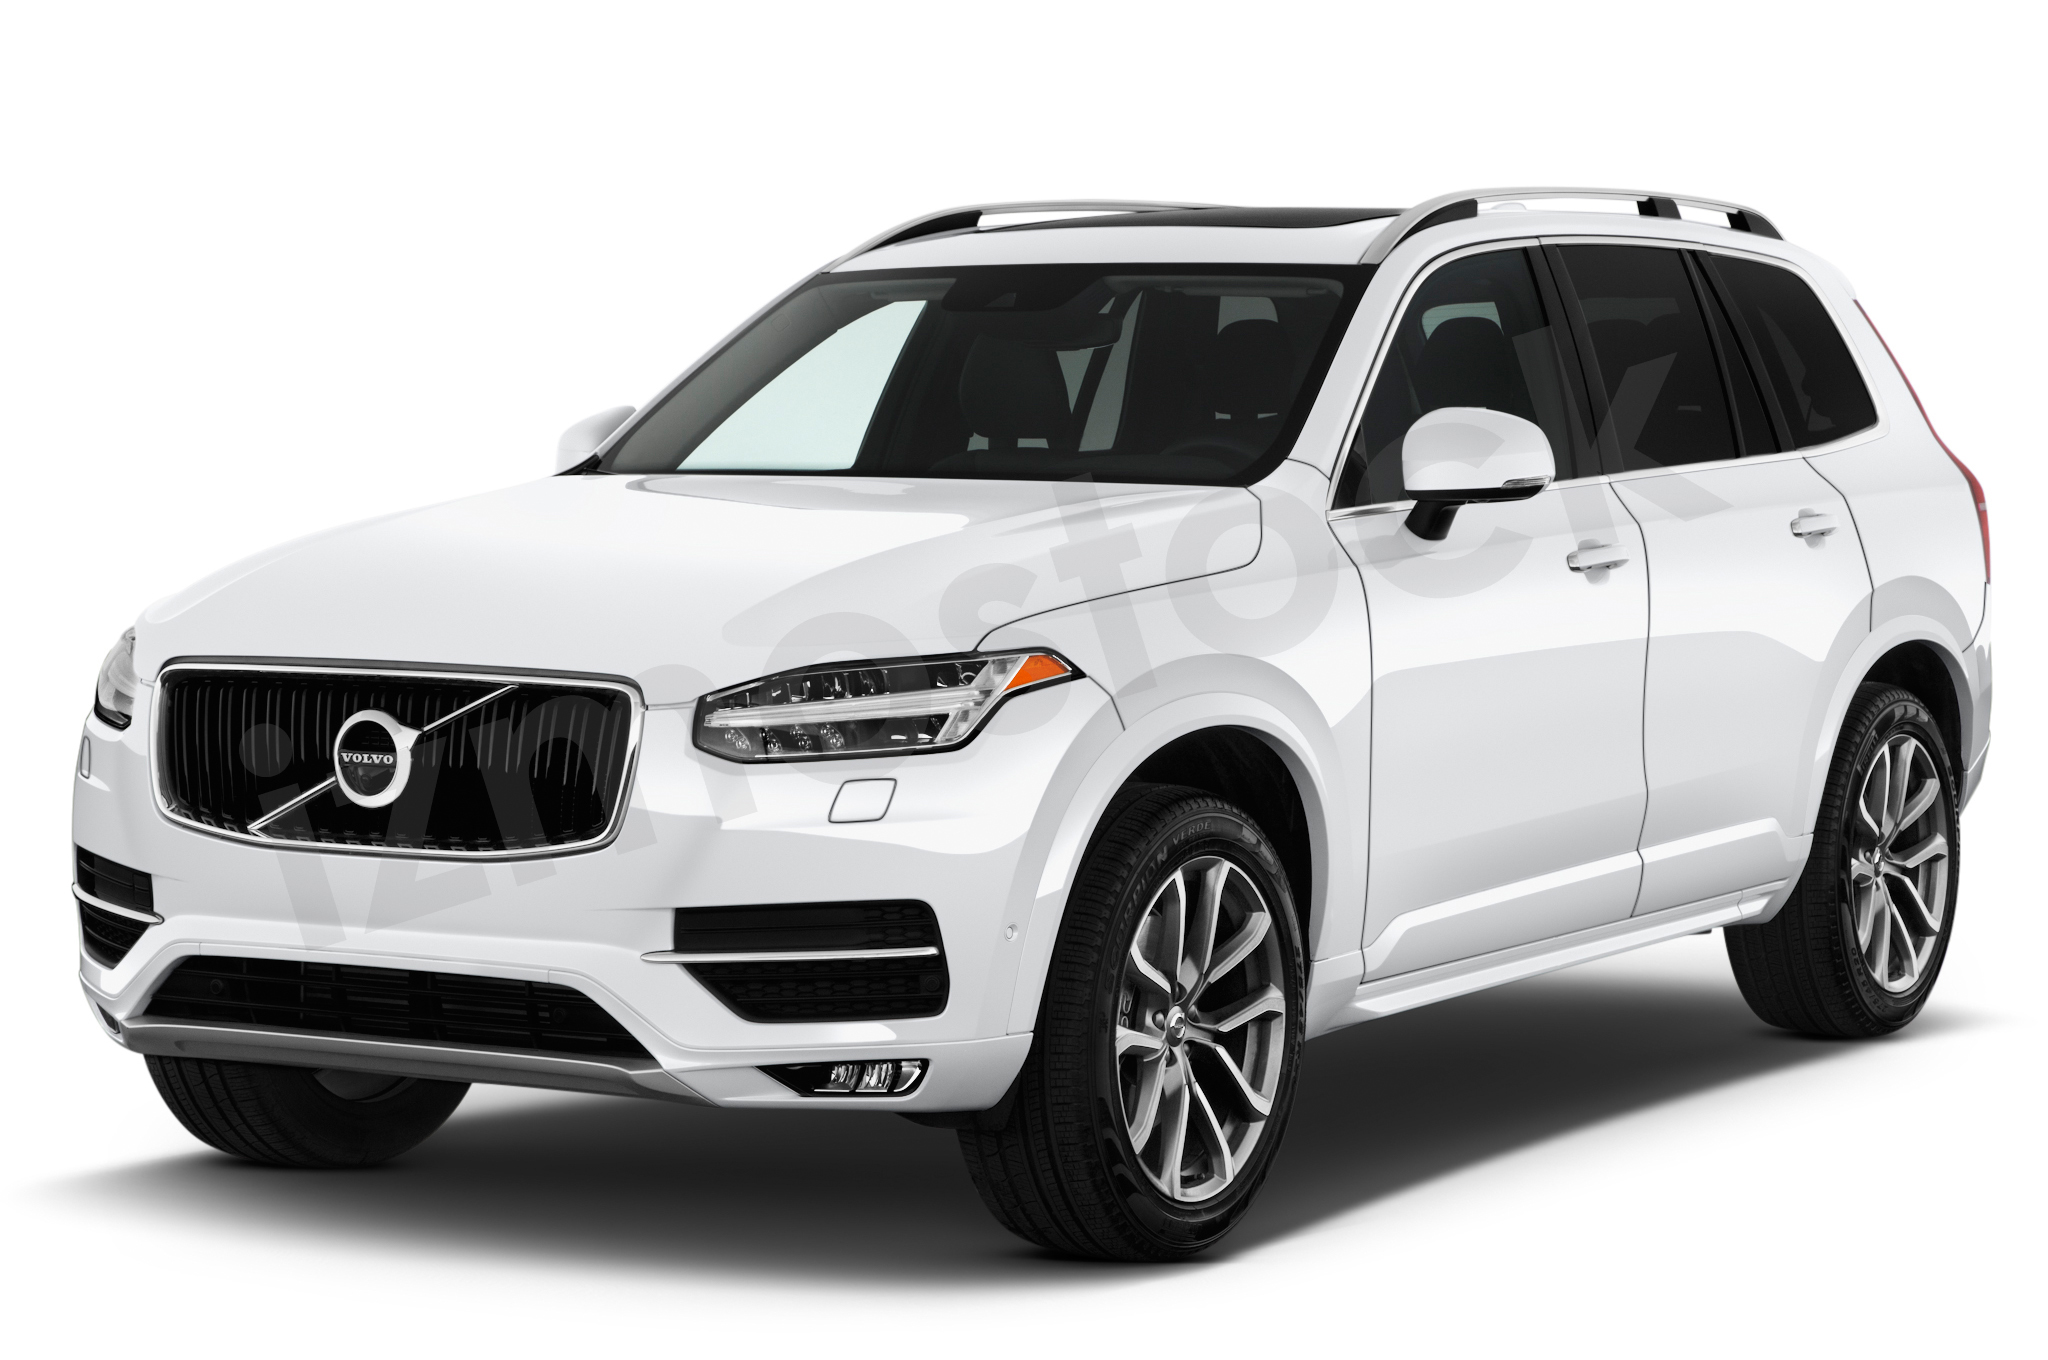 safety first volvo xc90 pictures specs review and price. Black Bedroom Furniture Sets. Home Design Ideas